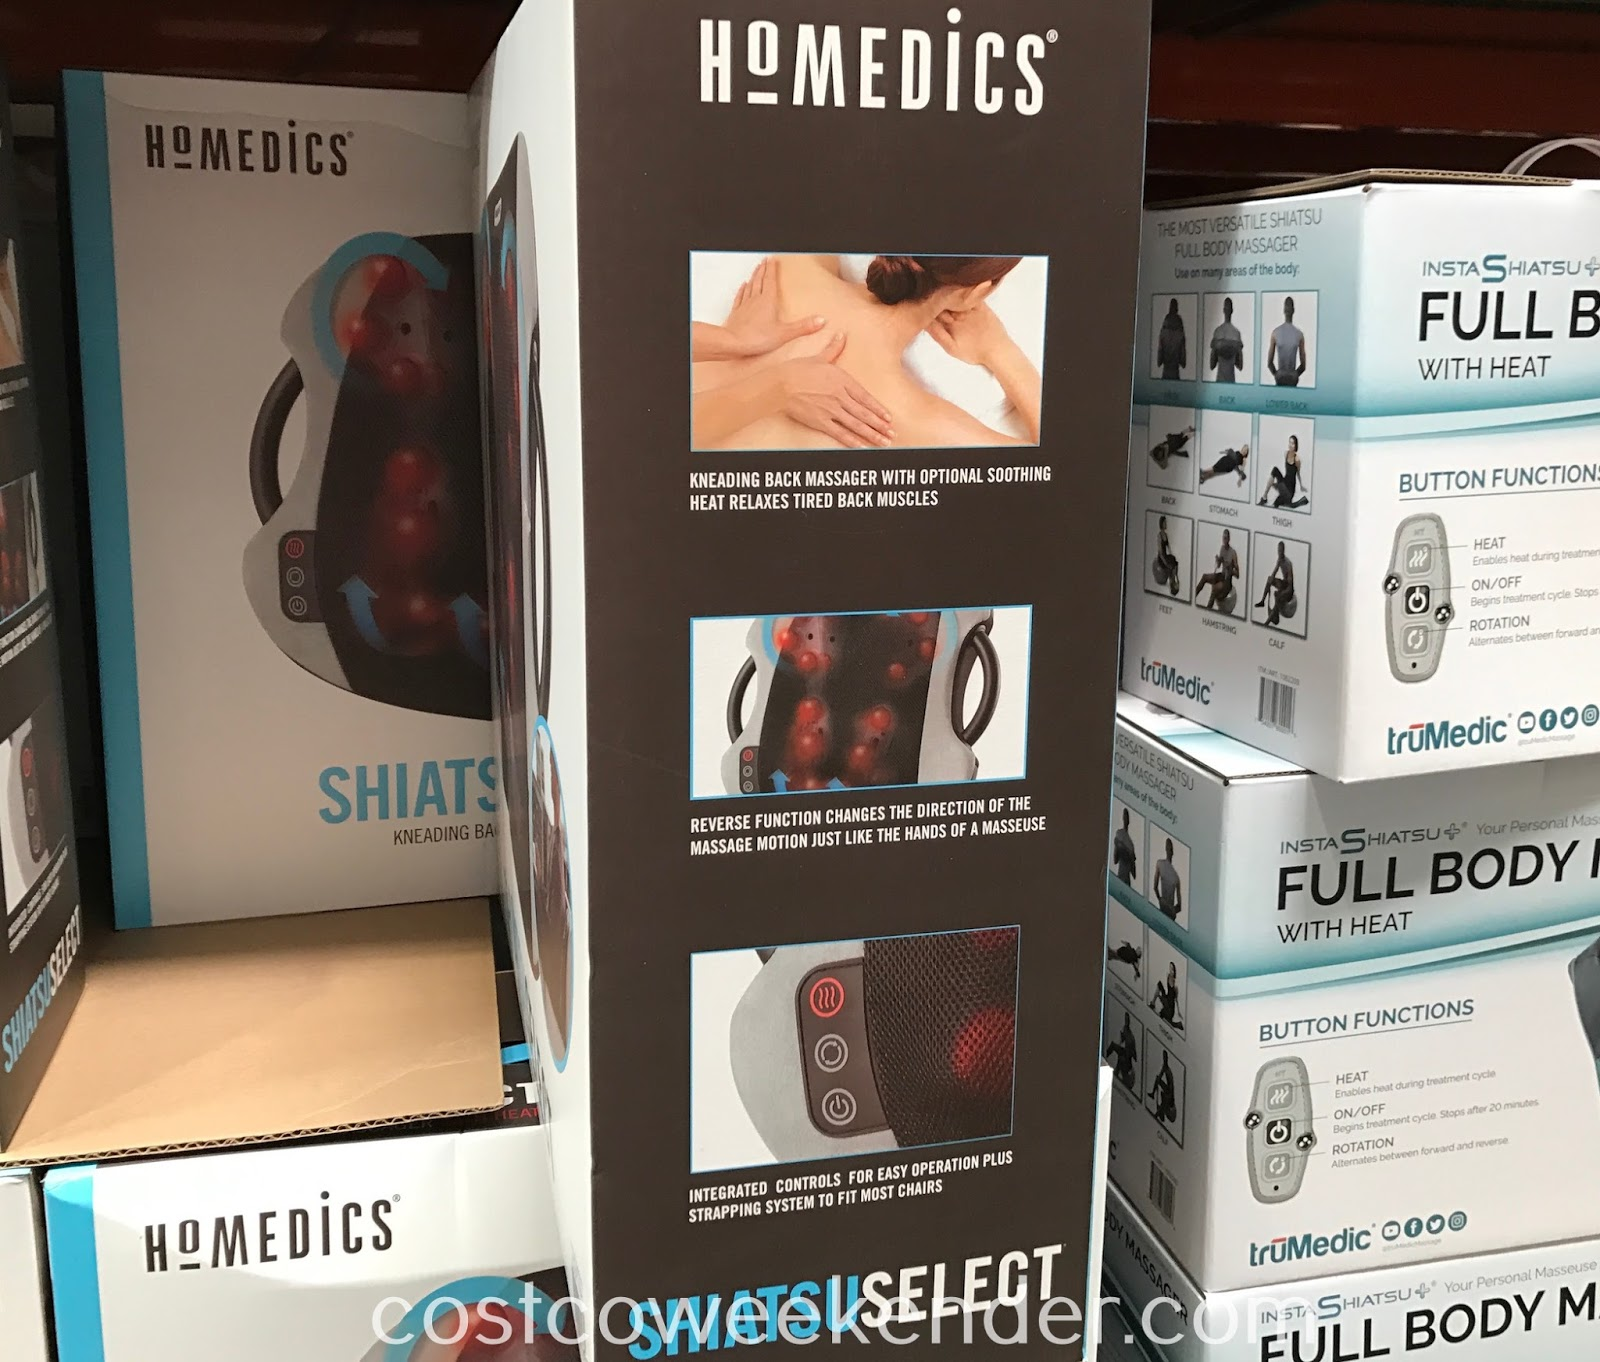 Costco 1065971 - HoMedics Shiatsu Select Kneading Back Massager: great for relaxation and achy backs